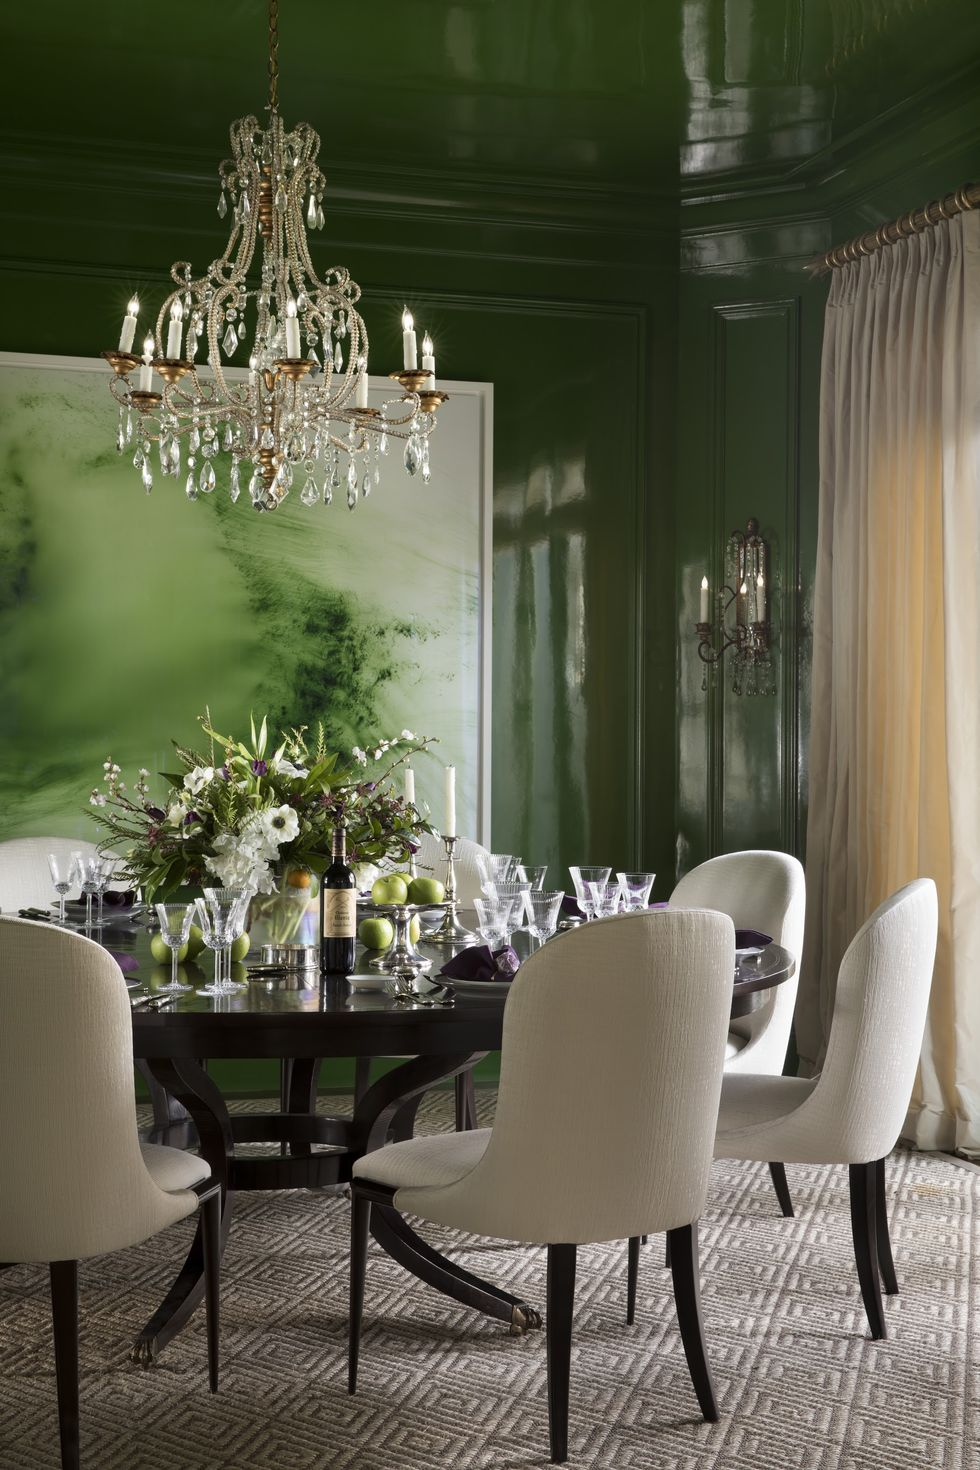 Thanksgiving Edition: Discover Which Lighting Ideas Will Make A Statement In Any Dining Room! thanksgiving Thanksgiving Edition: Discover Which Lighting Ideas Will Make A Statement In Any Dining Room! 4 3